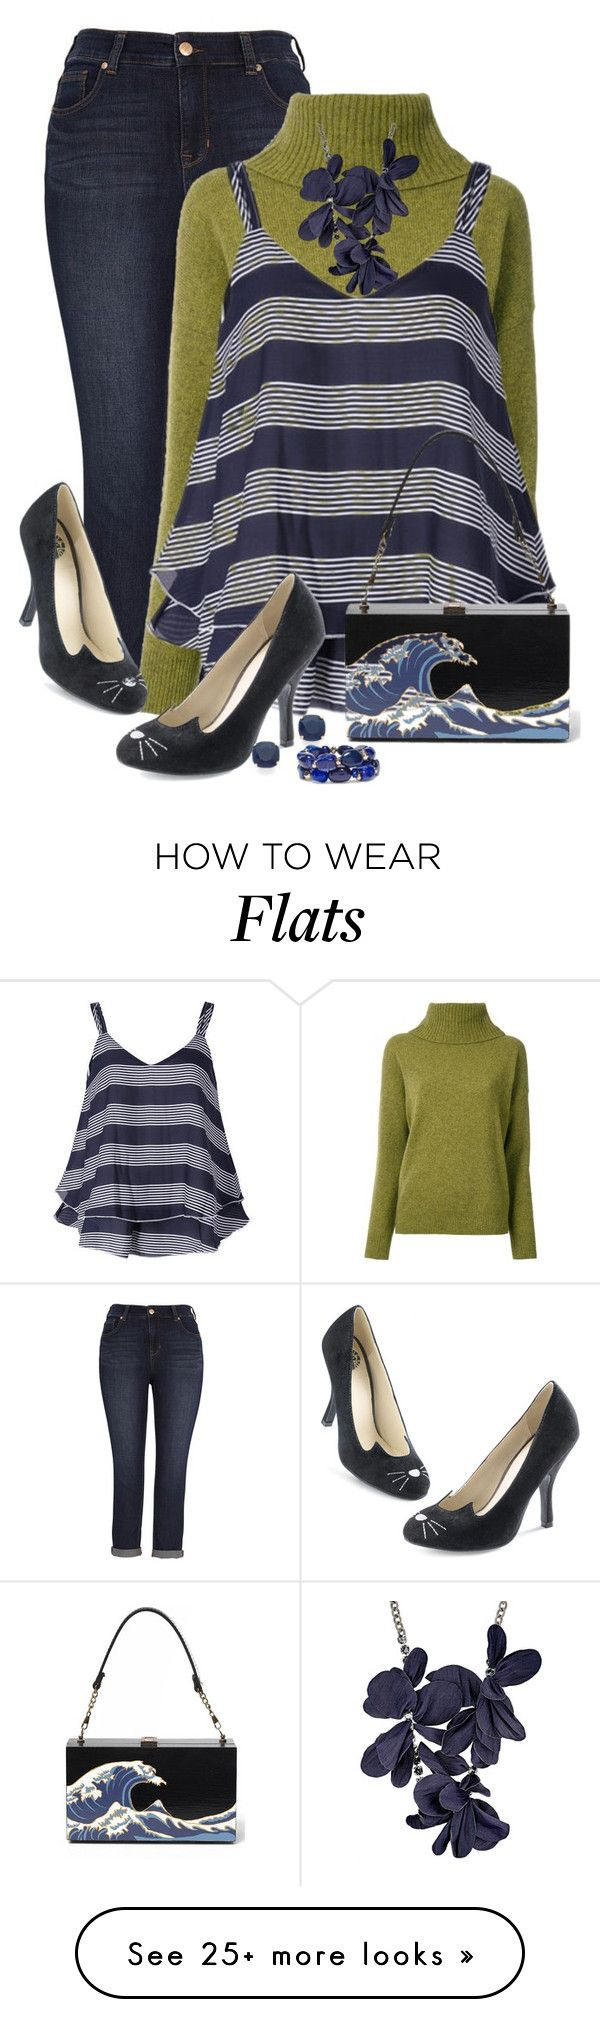 """Flat Out Cool! - Yeah!"" by jakenpink on Polyvore featuring Melissa McCarthy Seven7, Loveless, Lanvin, Kate Spade and Chico's"